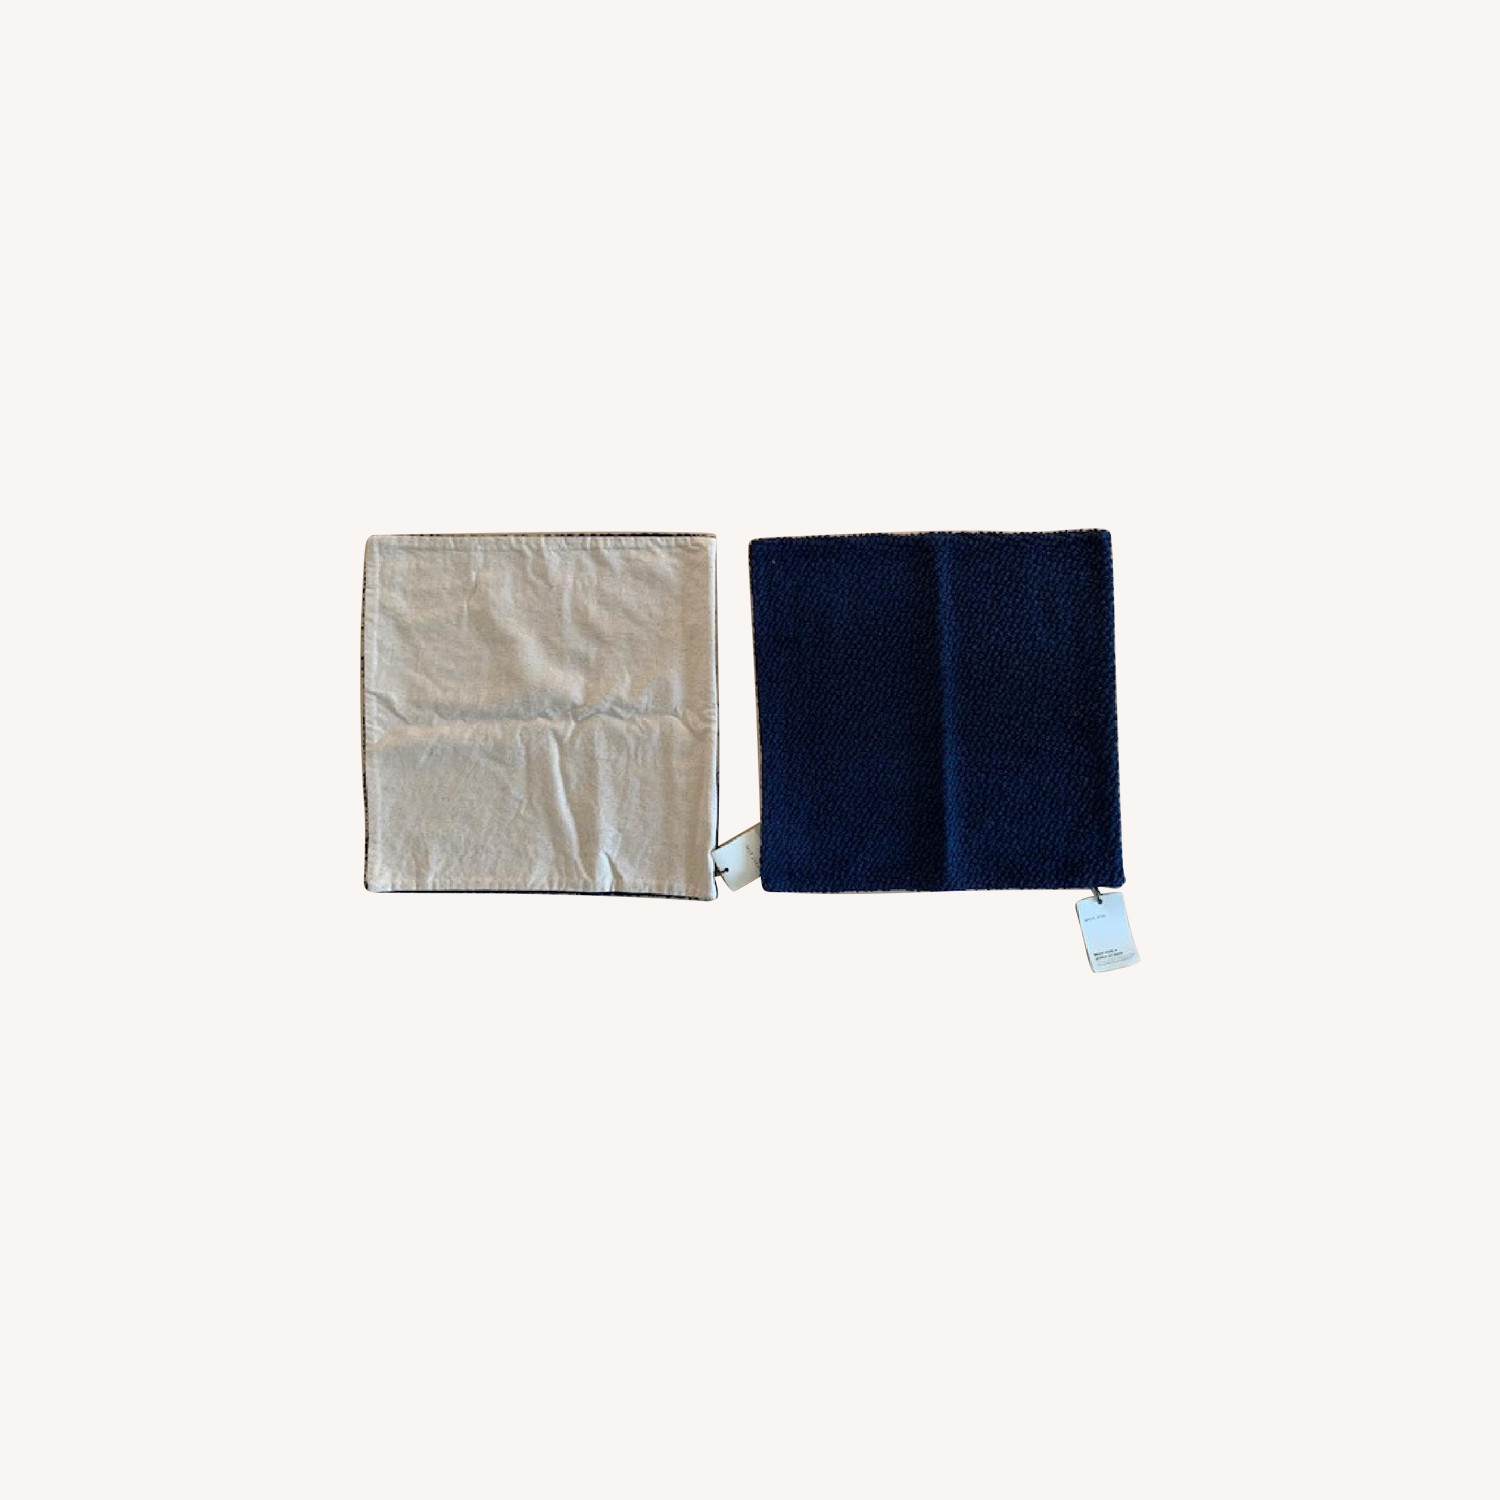 West Elm Boucle Navy Pillow Covers